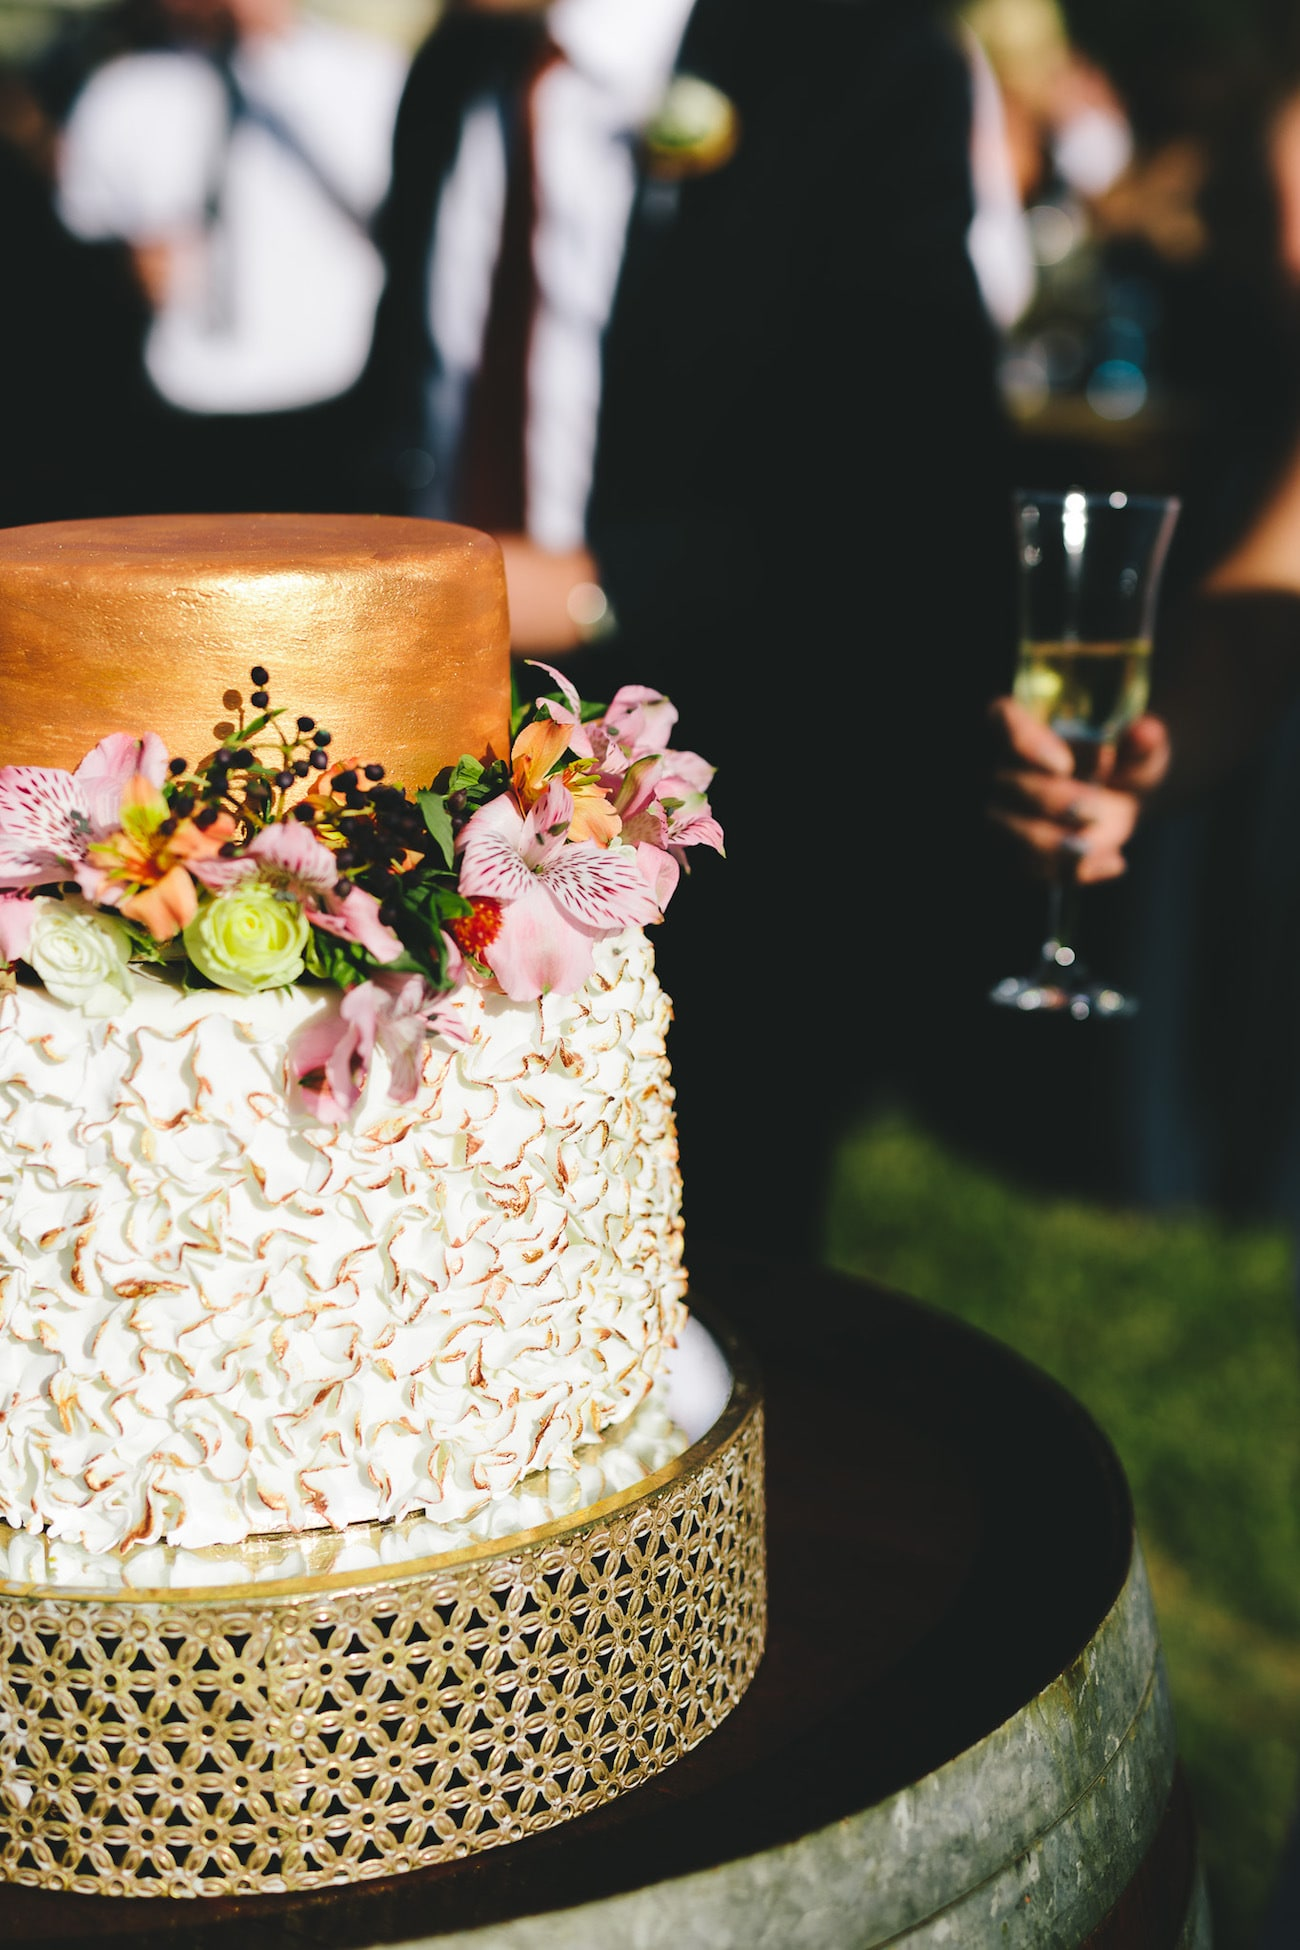 Copper Ruffle Wedding Cake | Credit: Charlie Ray Photography